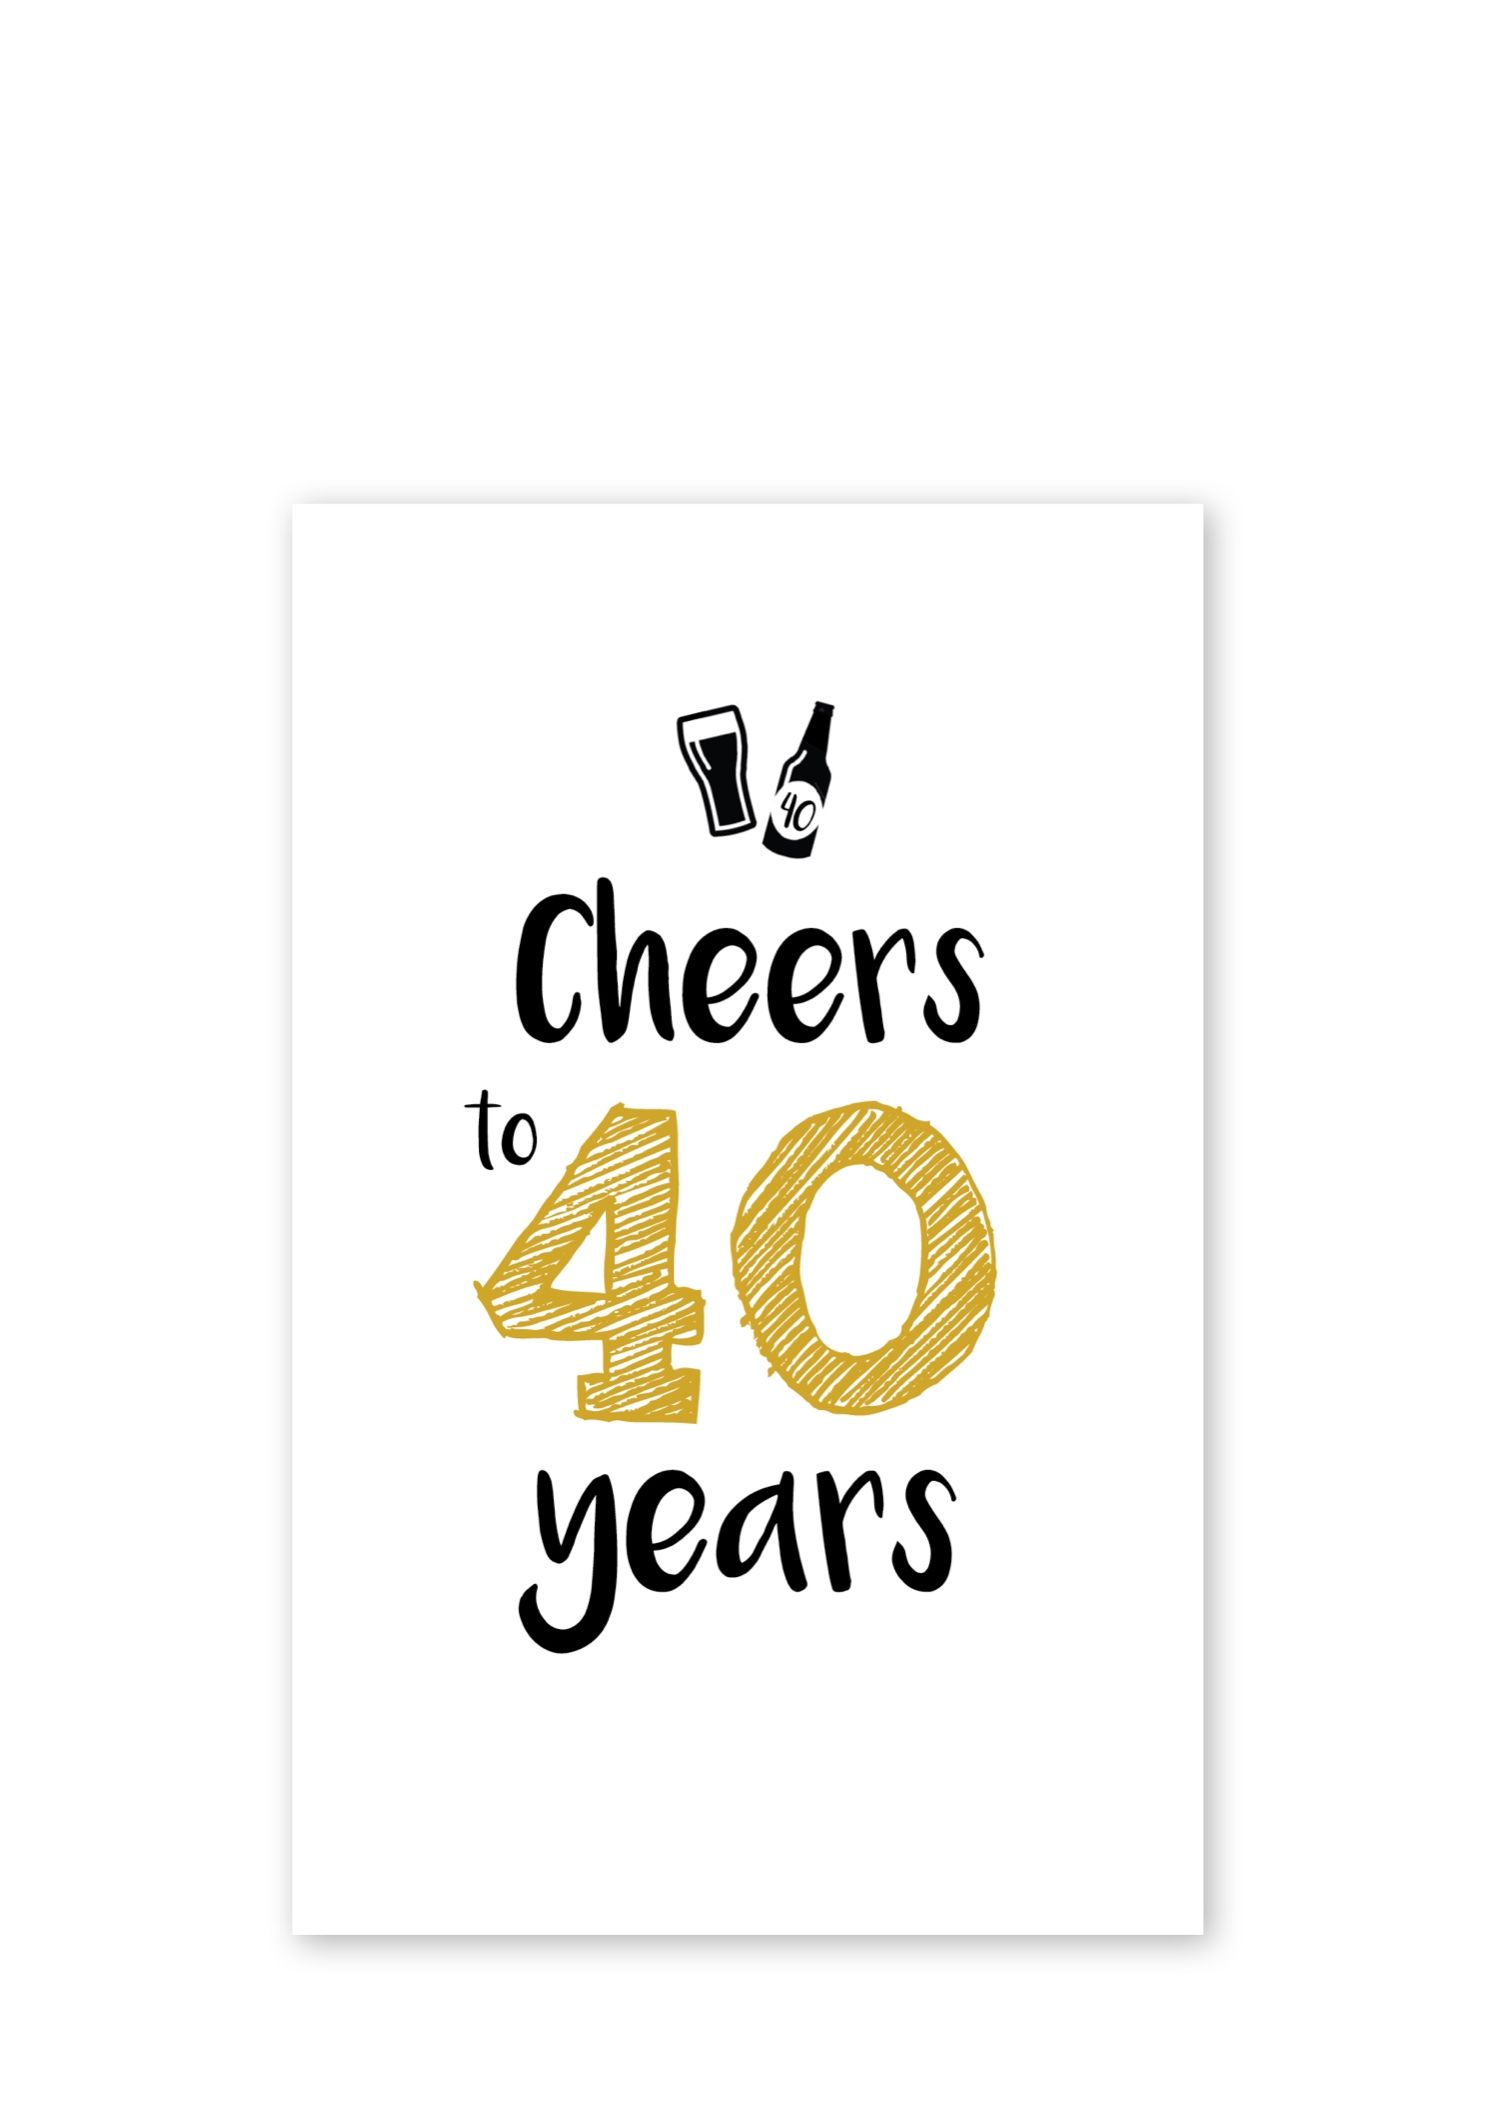 gratis e card 40 jaar Uitnodiging surprise party 40 jaar | Bujo fonts | Pinterest  gratis e card 40 jaar